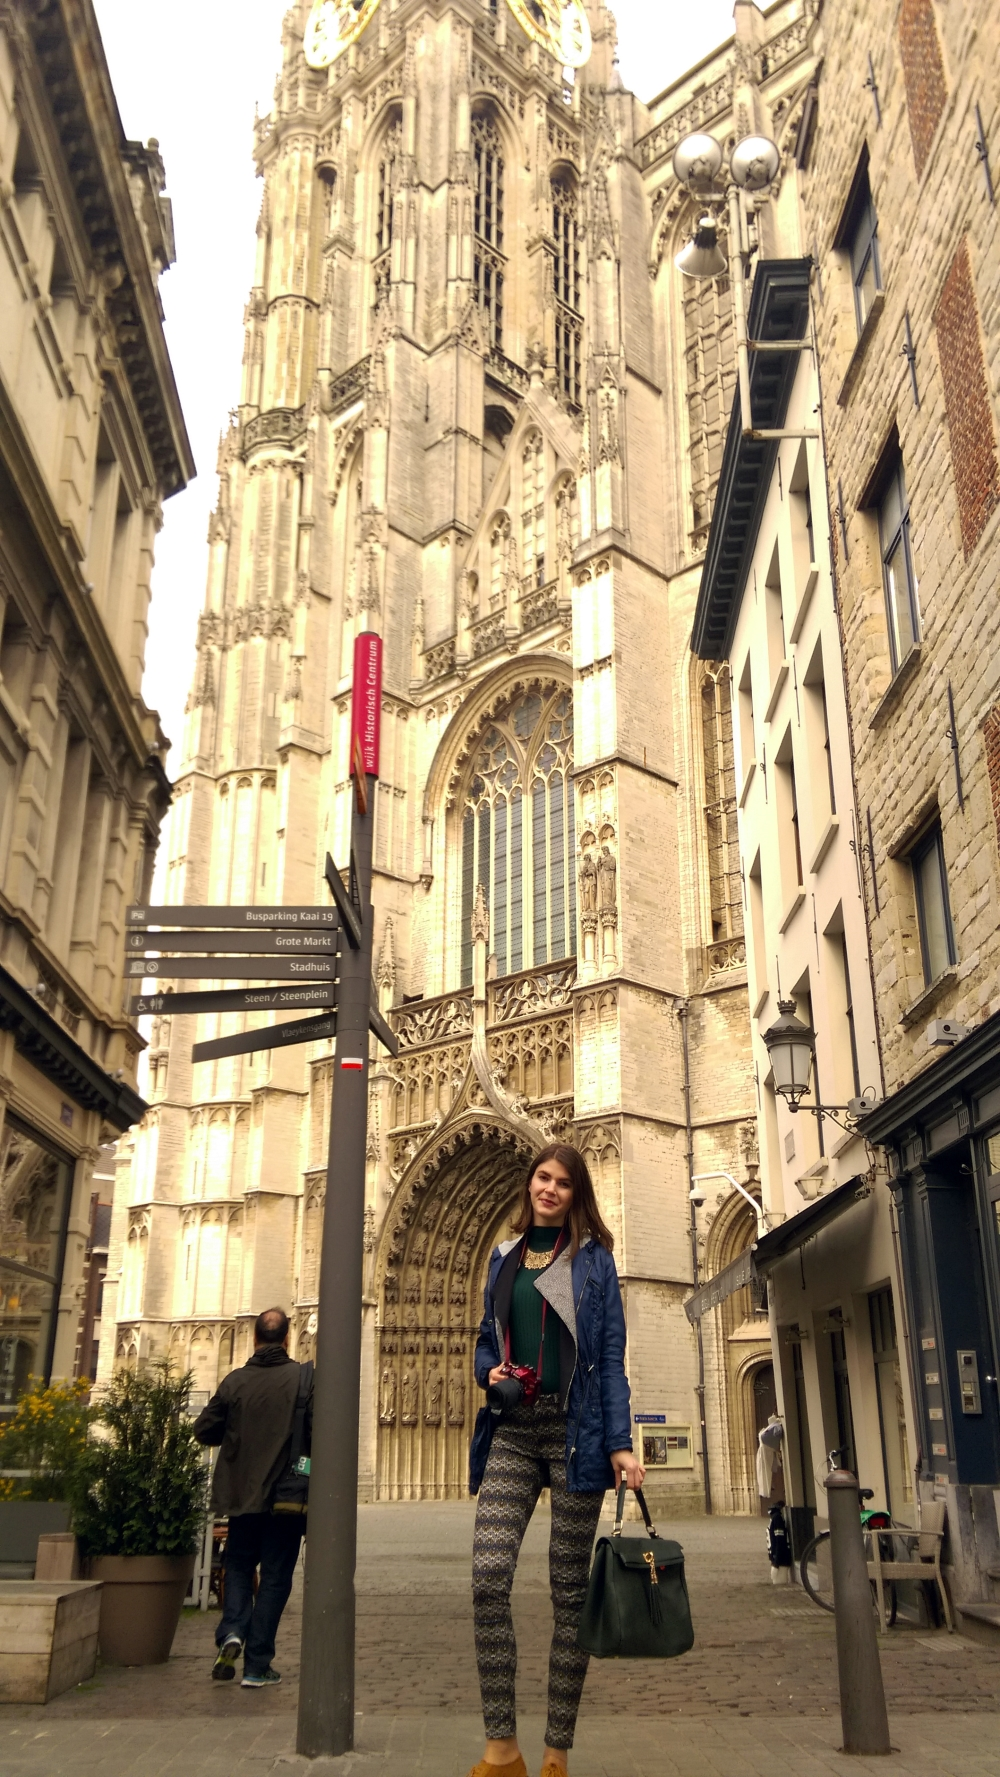 Antwerp, The cathedral of our lady, tourist attractions in Antwerp, glamthug blog, why to visit Belgium